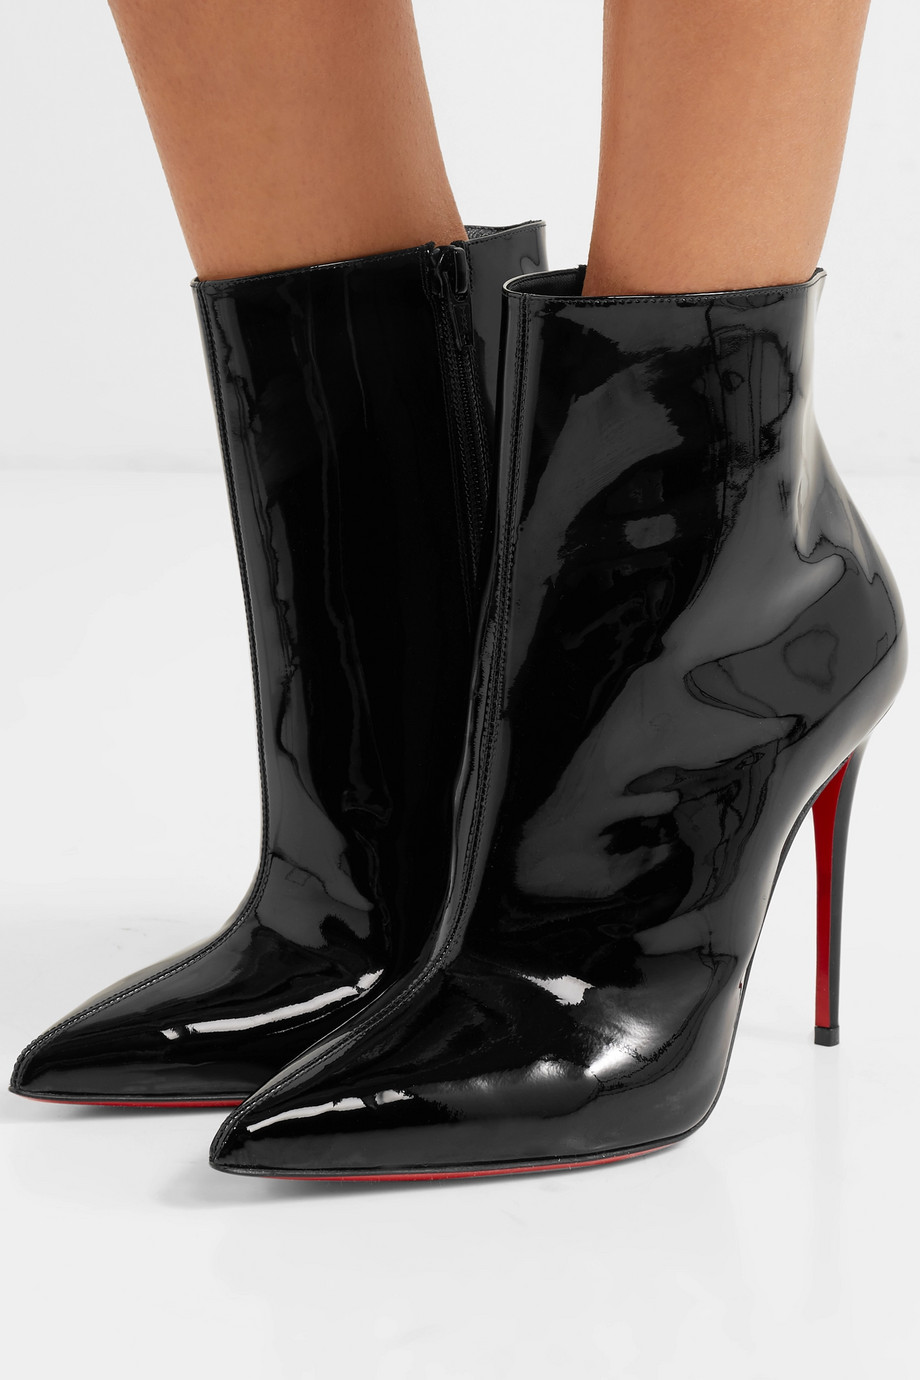 Christian Louboutin Bottines en cuir verni So Kate Booty 100